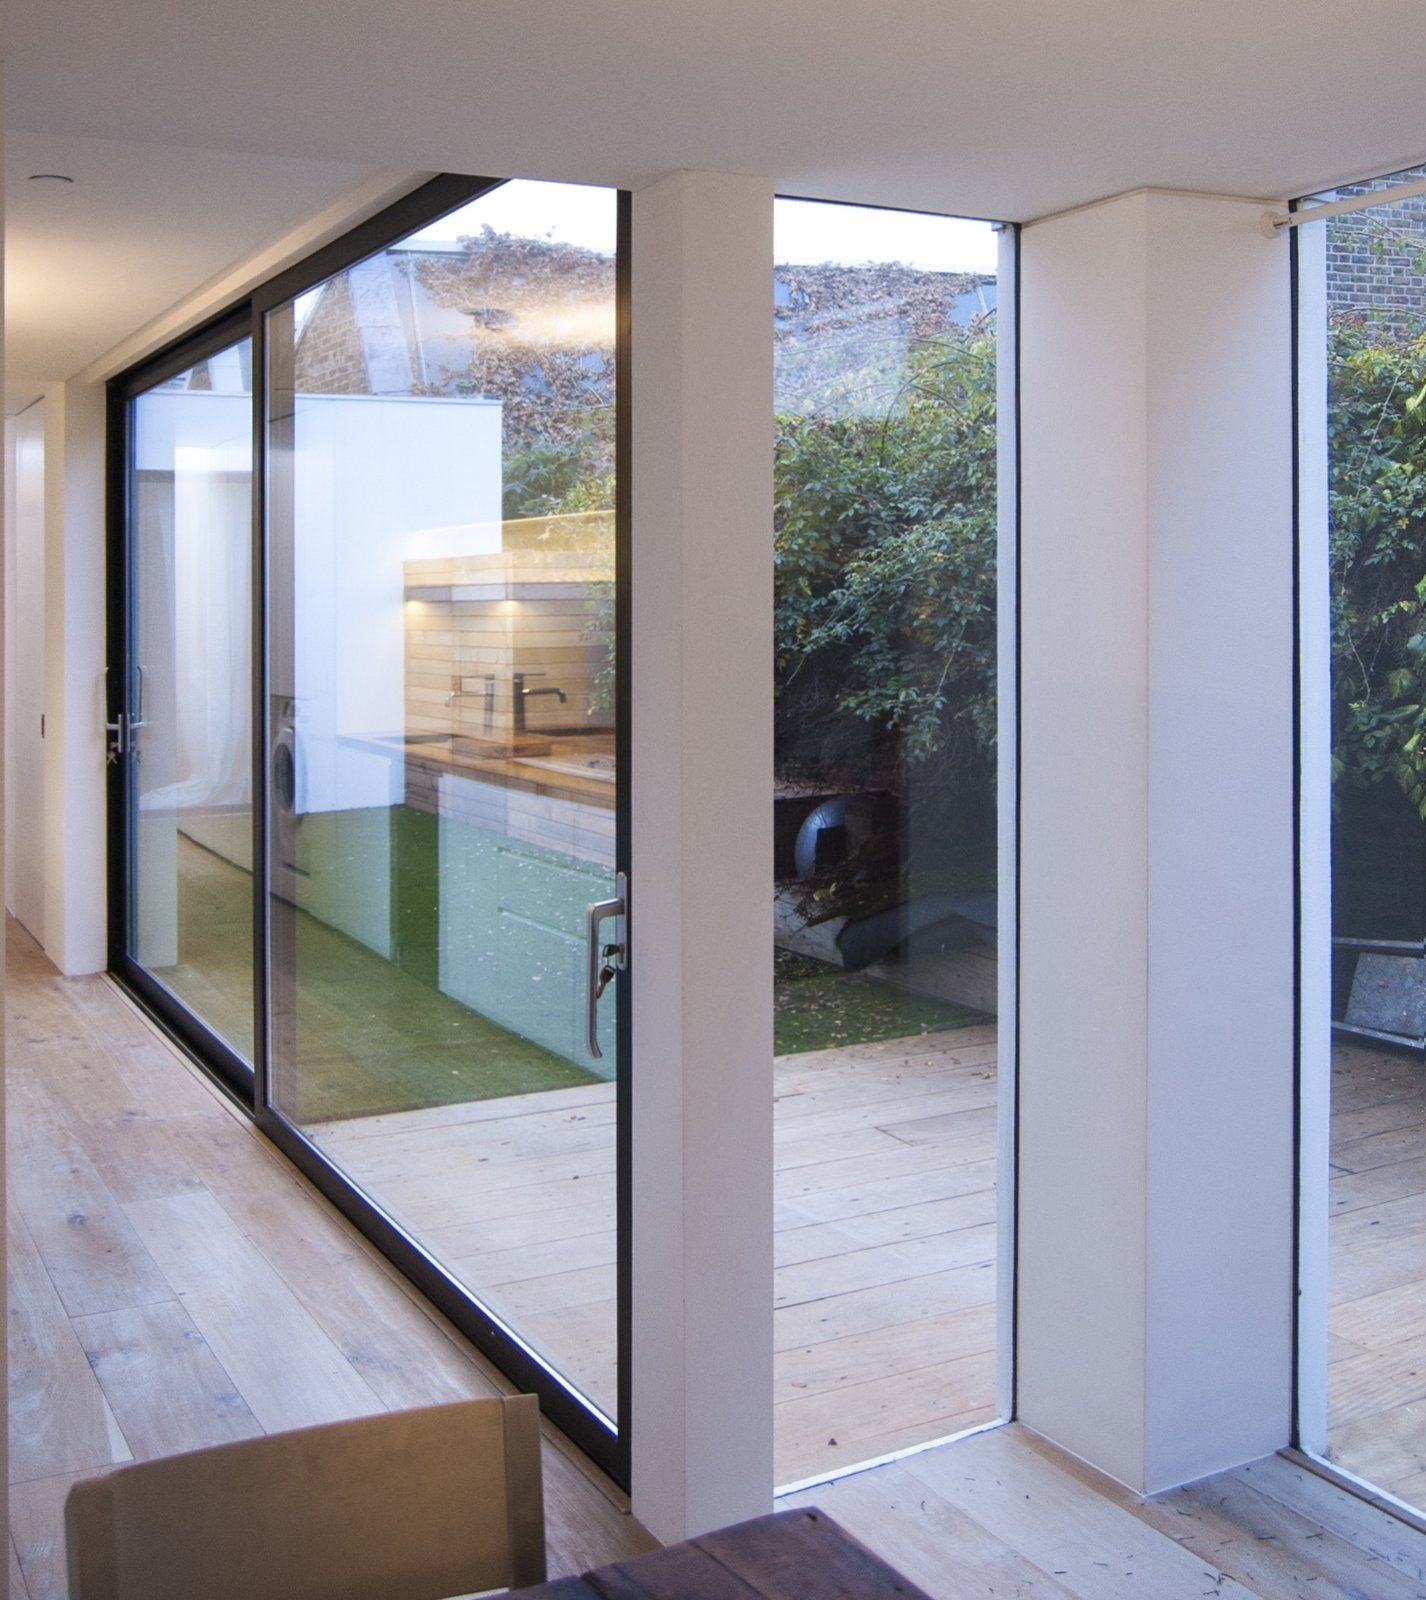 The dining area is open-plan to the kitchen and living space and separated from the courtyard by large panels of fixed glazing.  Unité de Rénovation by WILLIAM TOZER Associates